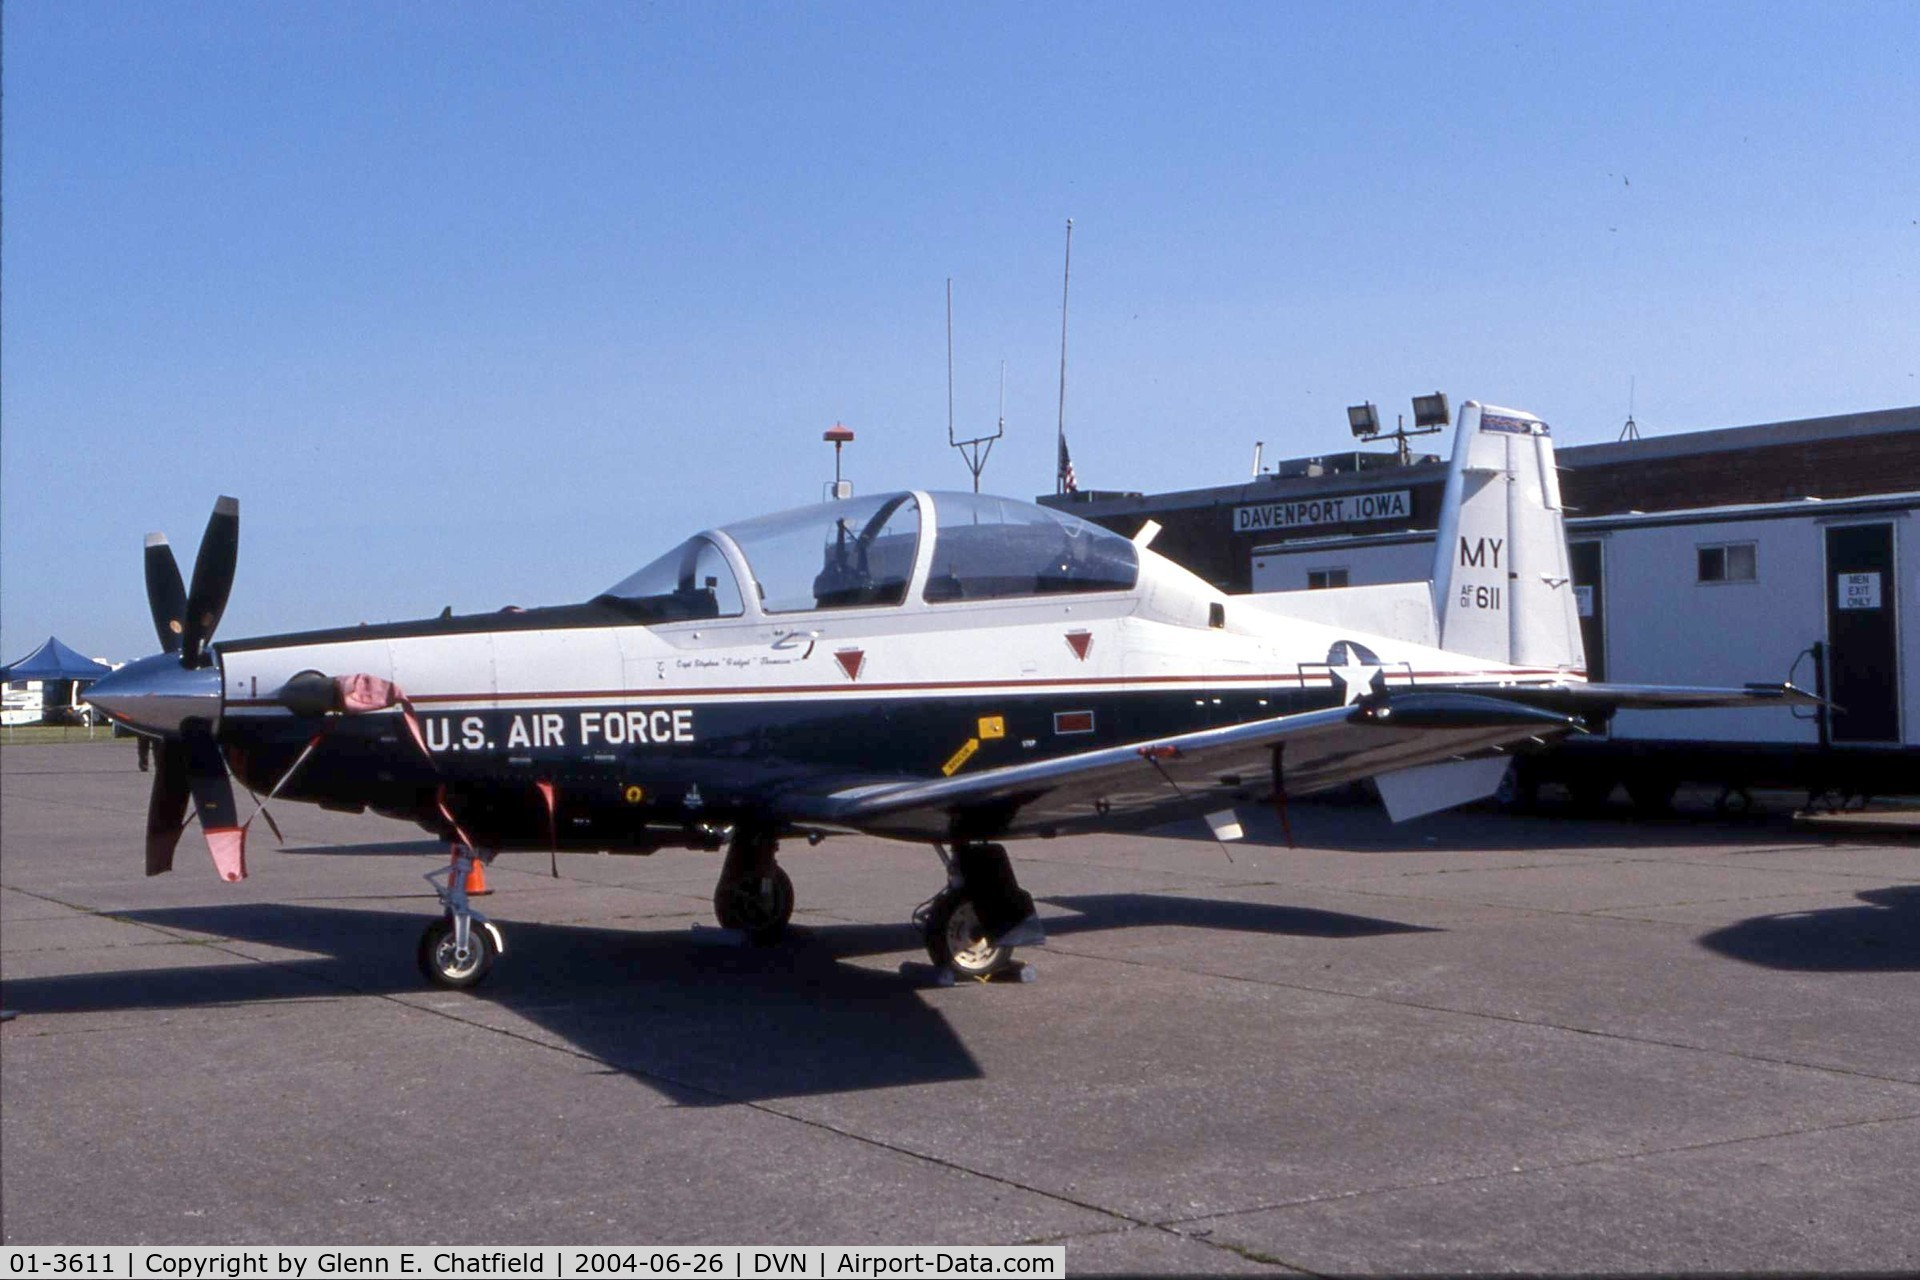 01-3611, 2001 Raytheon T-6A Texan II C/N PT-134, Texan II at the Quad Cities Air Show